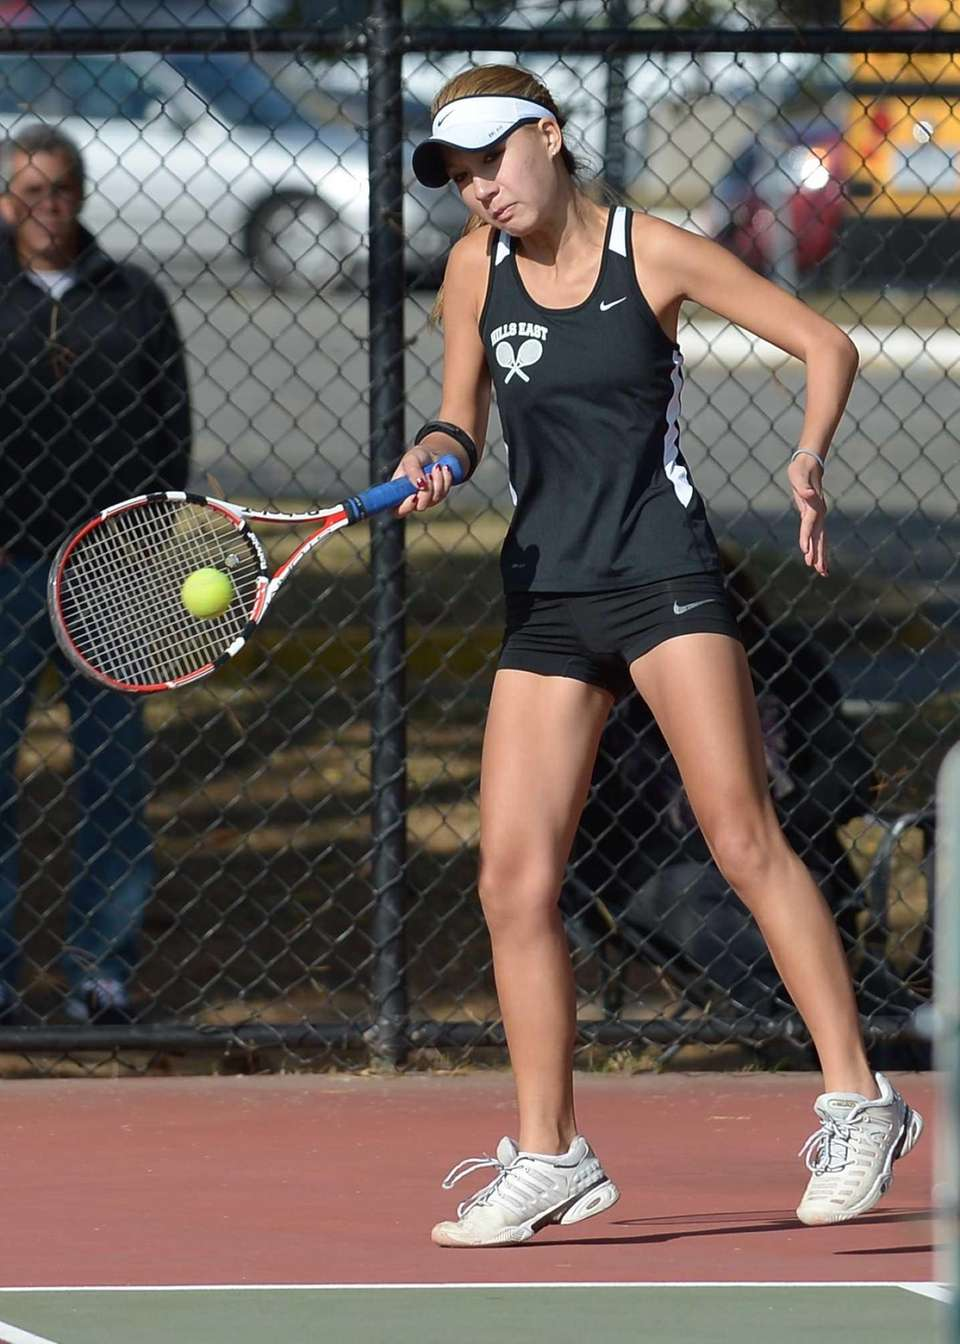 Natalie Haedich hits a forehand return during her